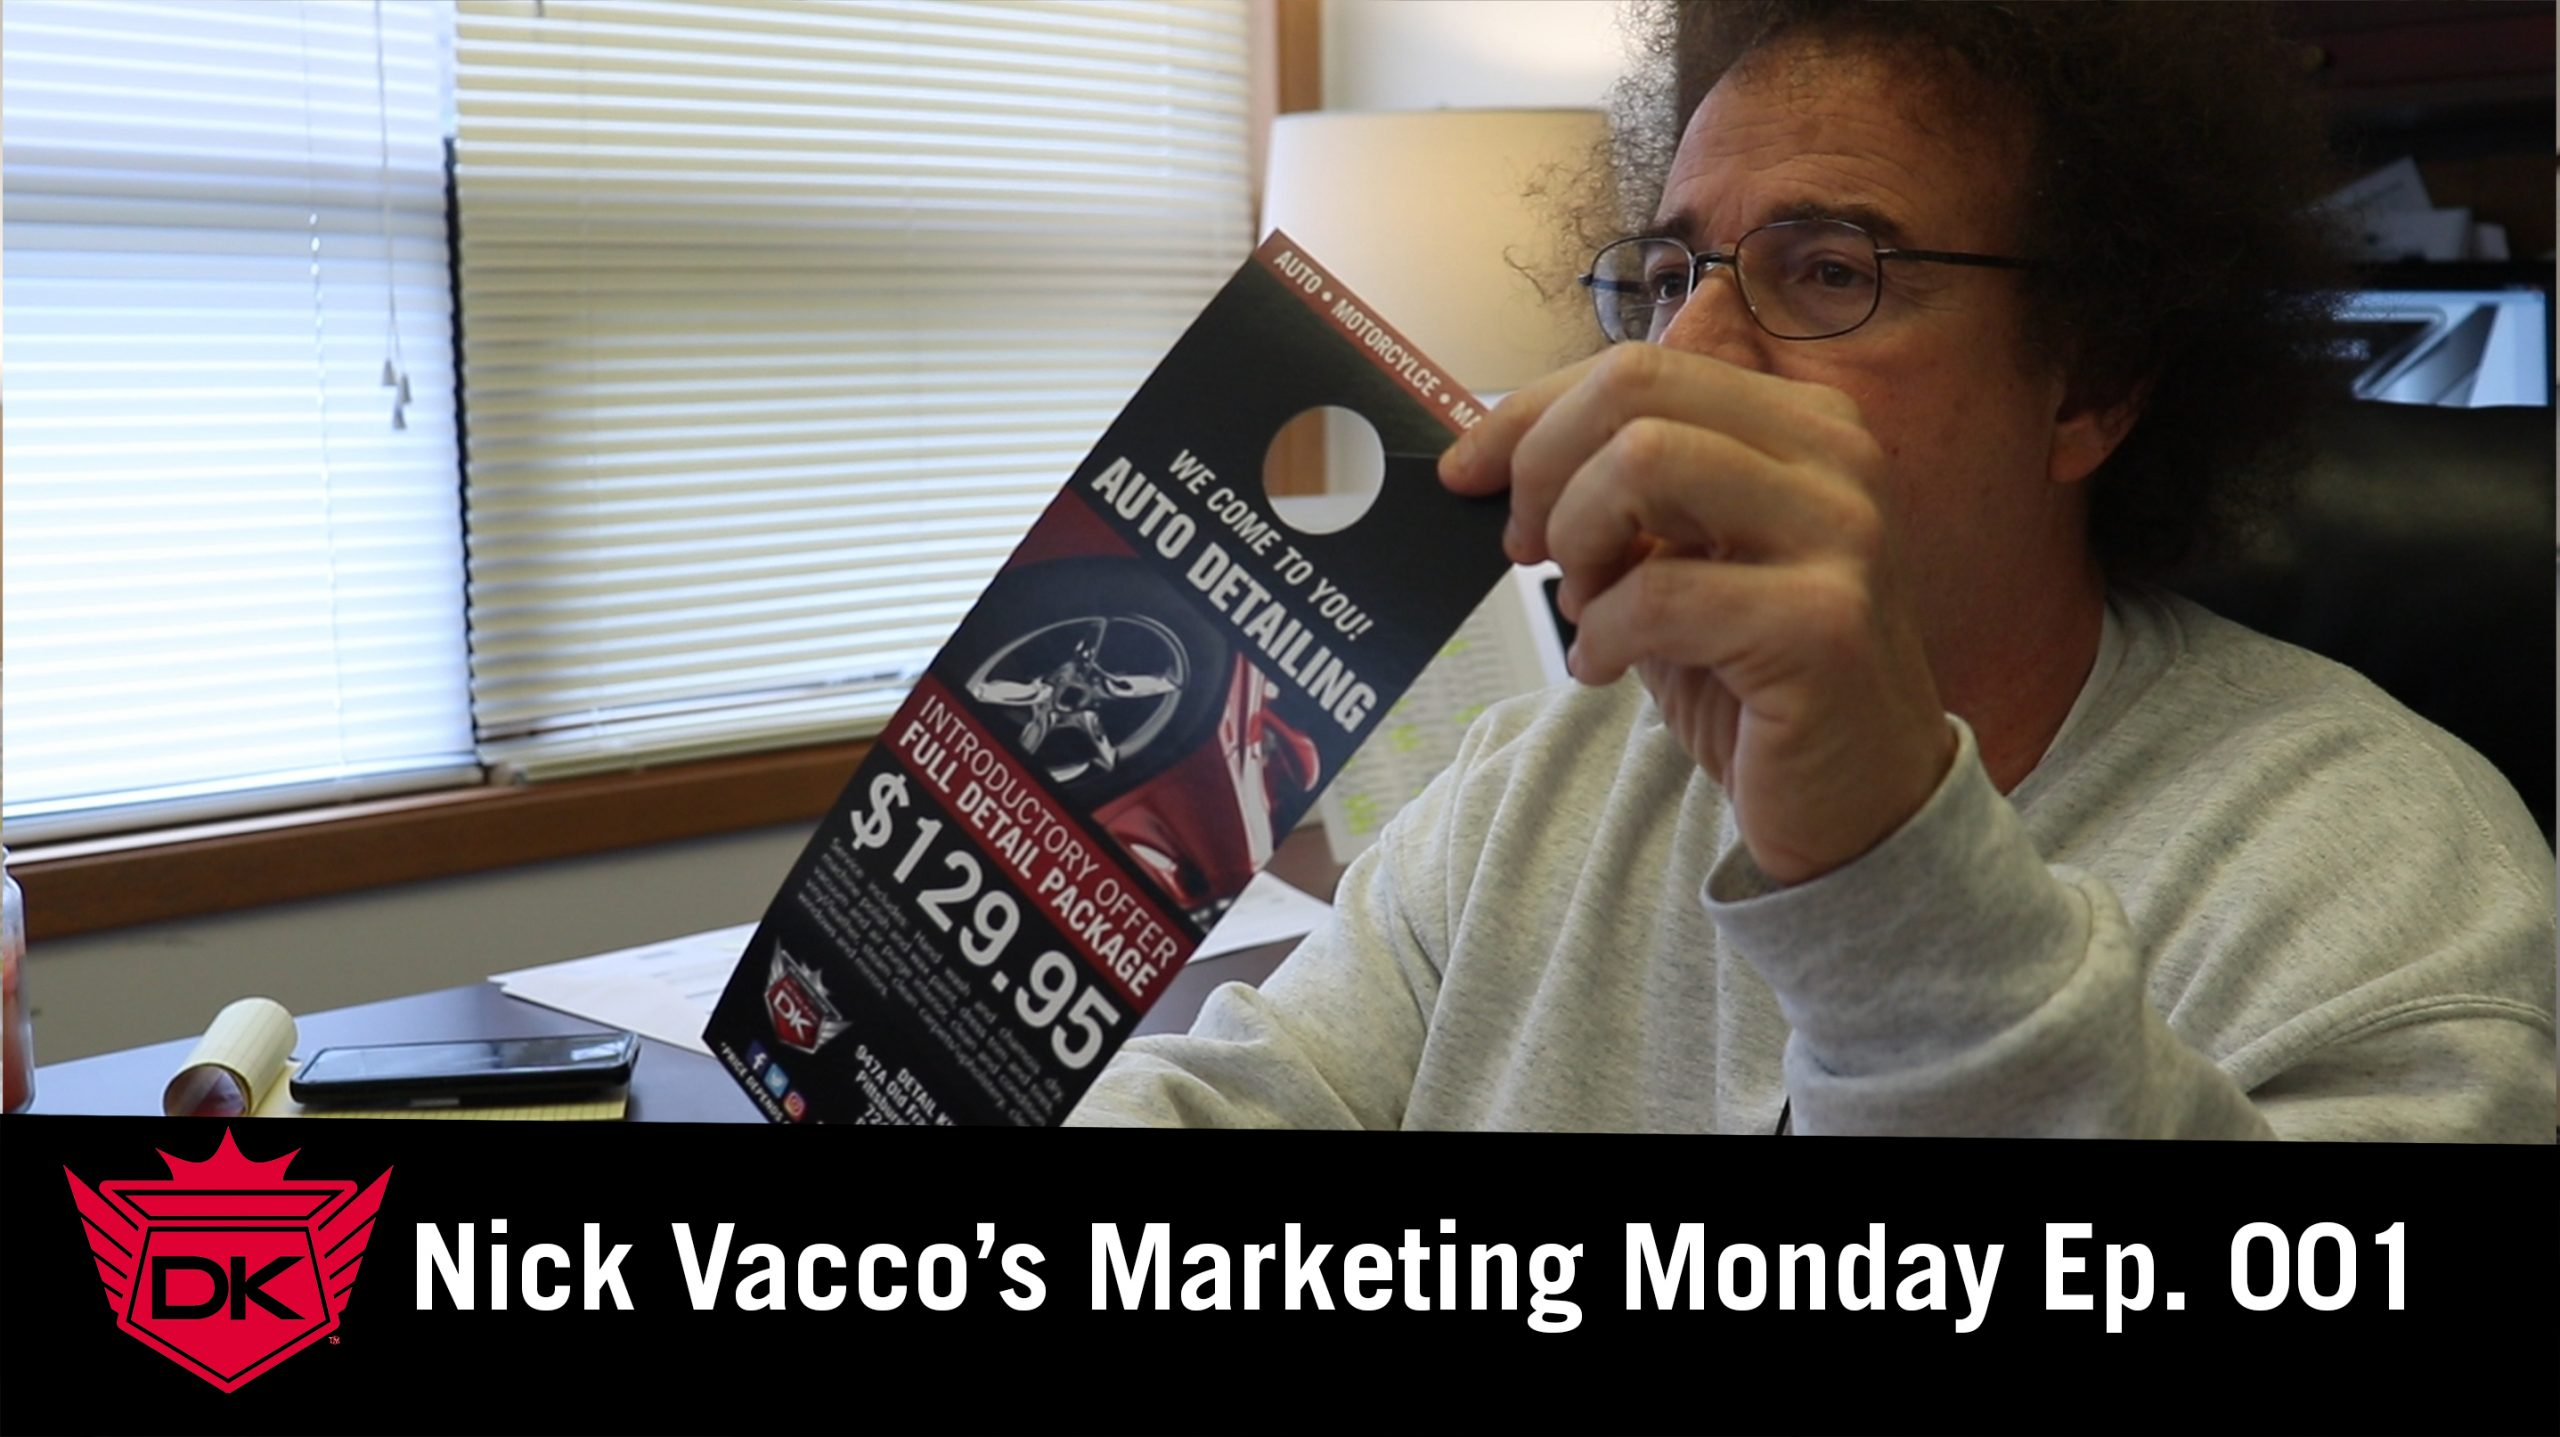 Nick Vacco's Marketing Monday Ep. 001